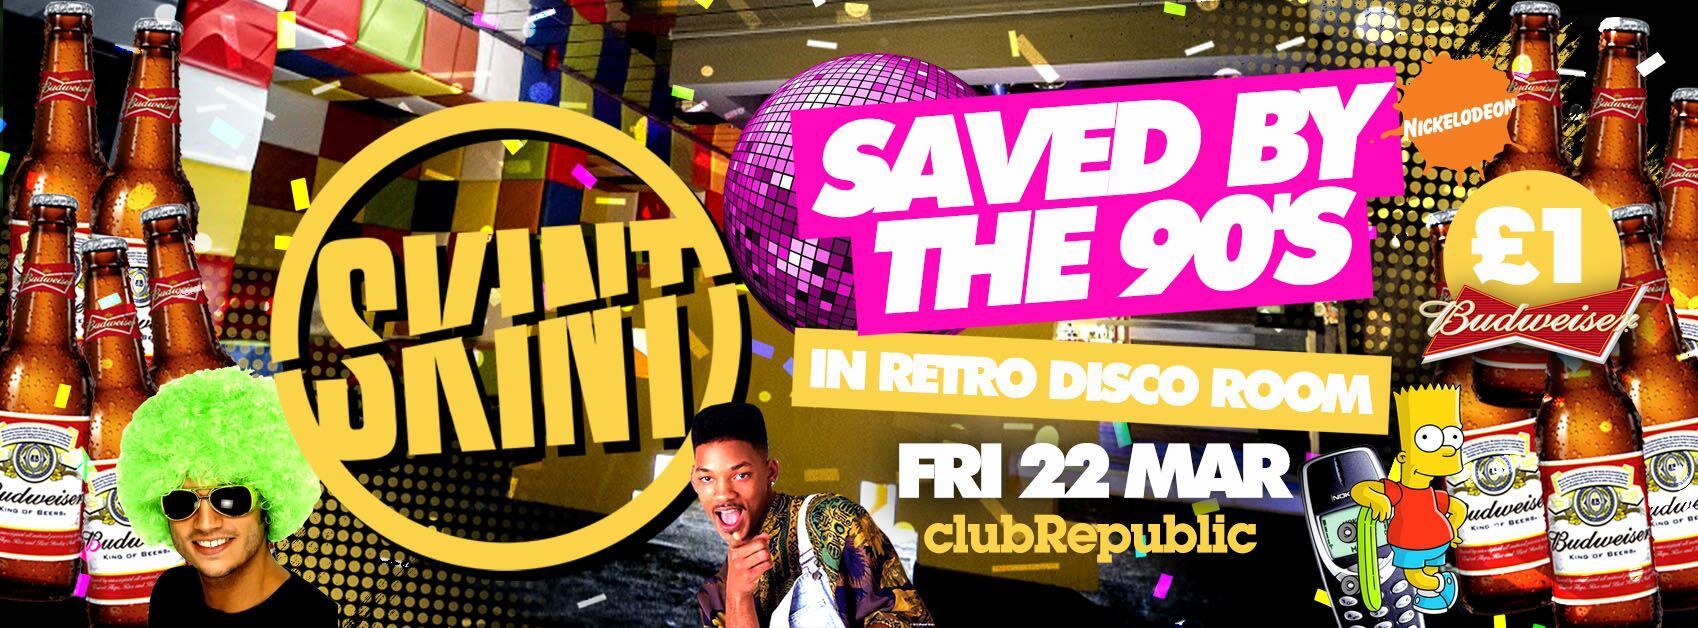 ★ Skint Fridays ★ Saved By The 90s ★ £1 BUDS ALL NIGHT! ★ Club Republic ★ £1 Tickets On Sale!